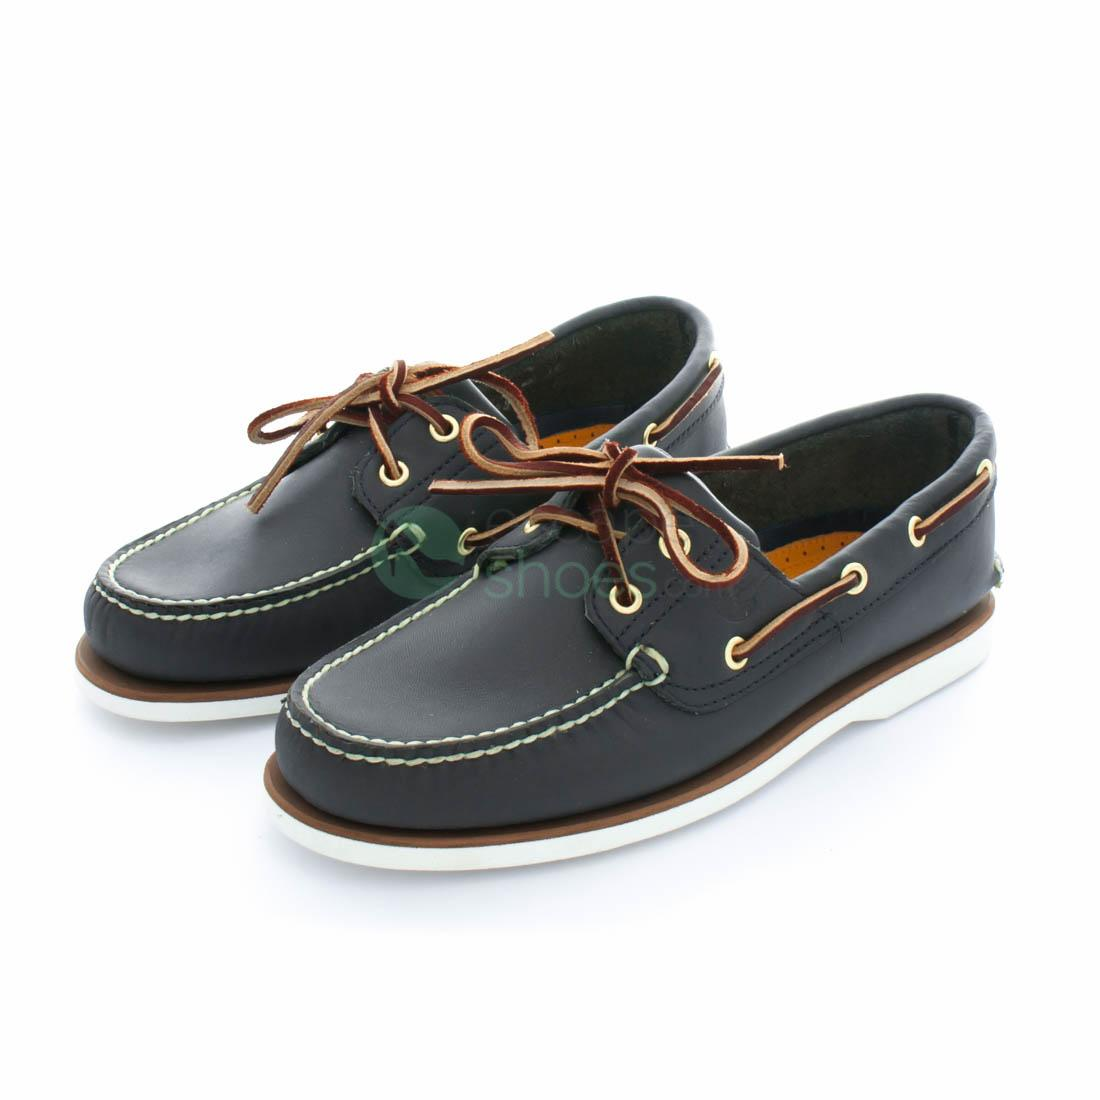 new high get cheap good out x Shoes TIMBERLAND 74036 Classic 2-Eye Boat Shoe